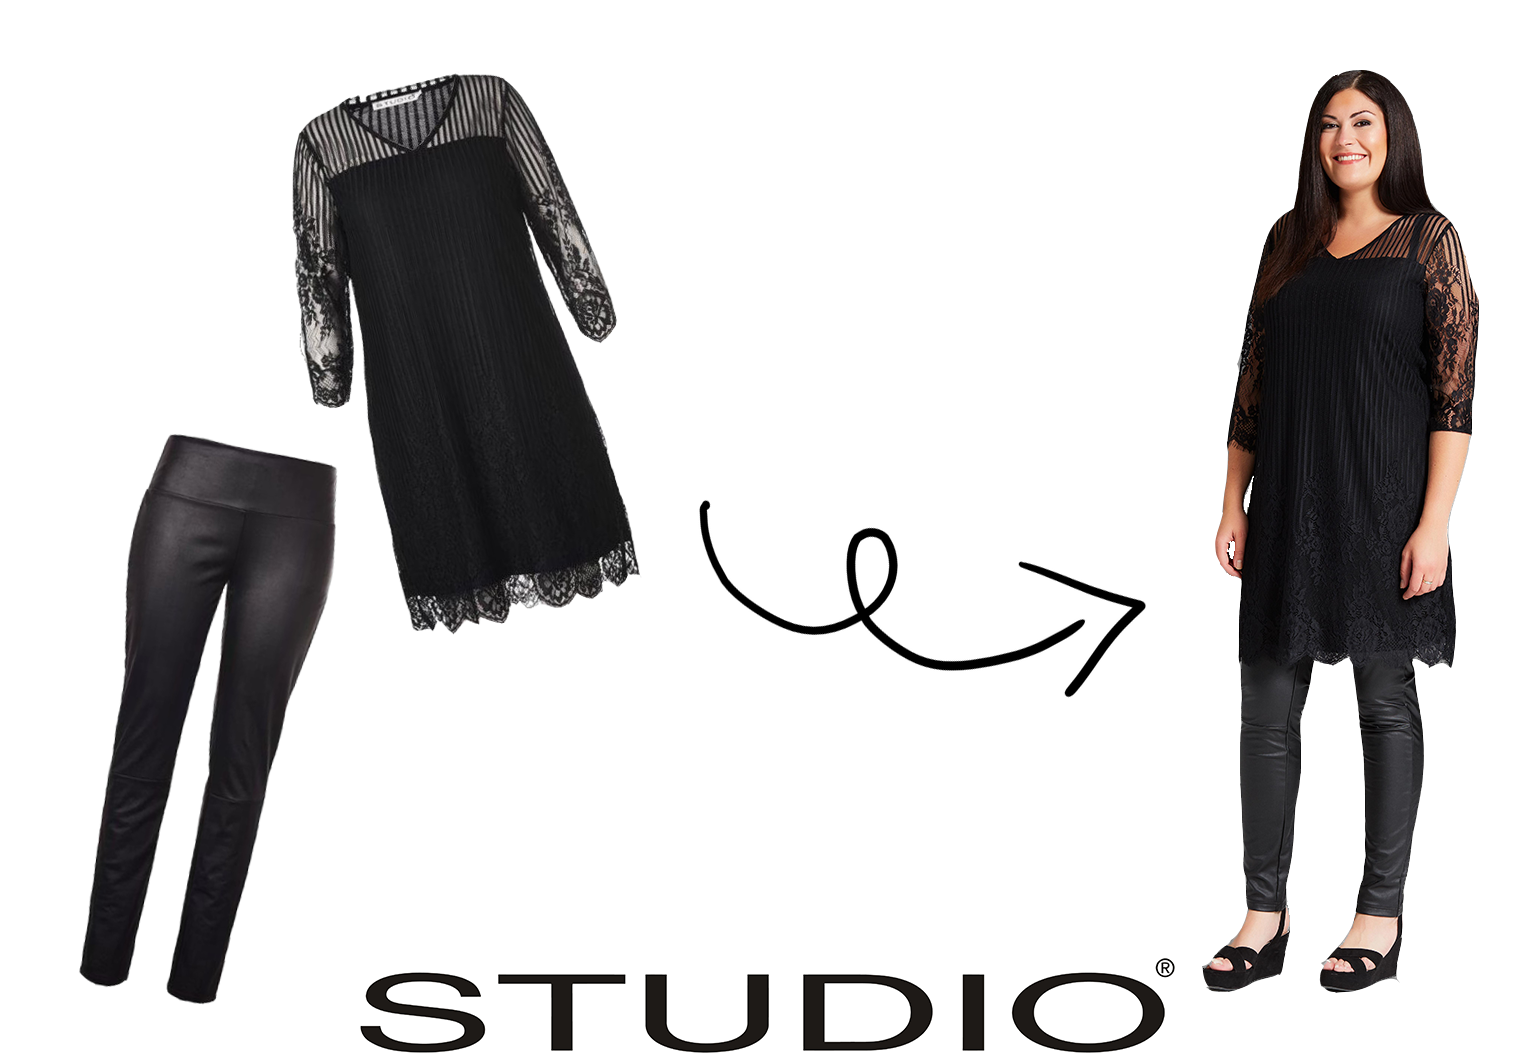 Collectie Studio leatherlook